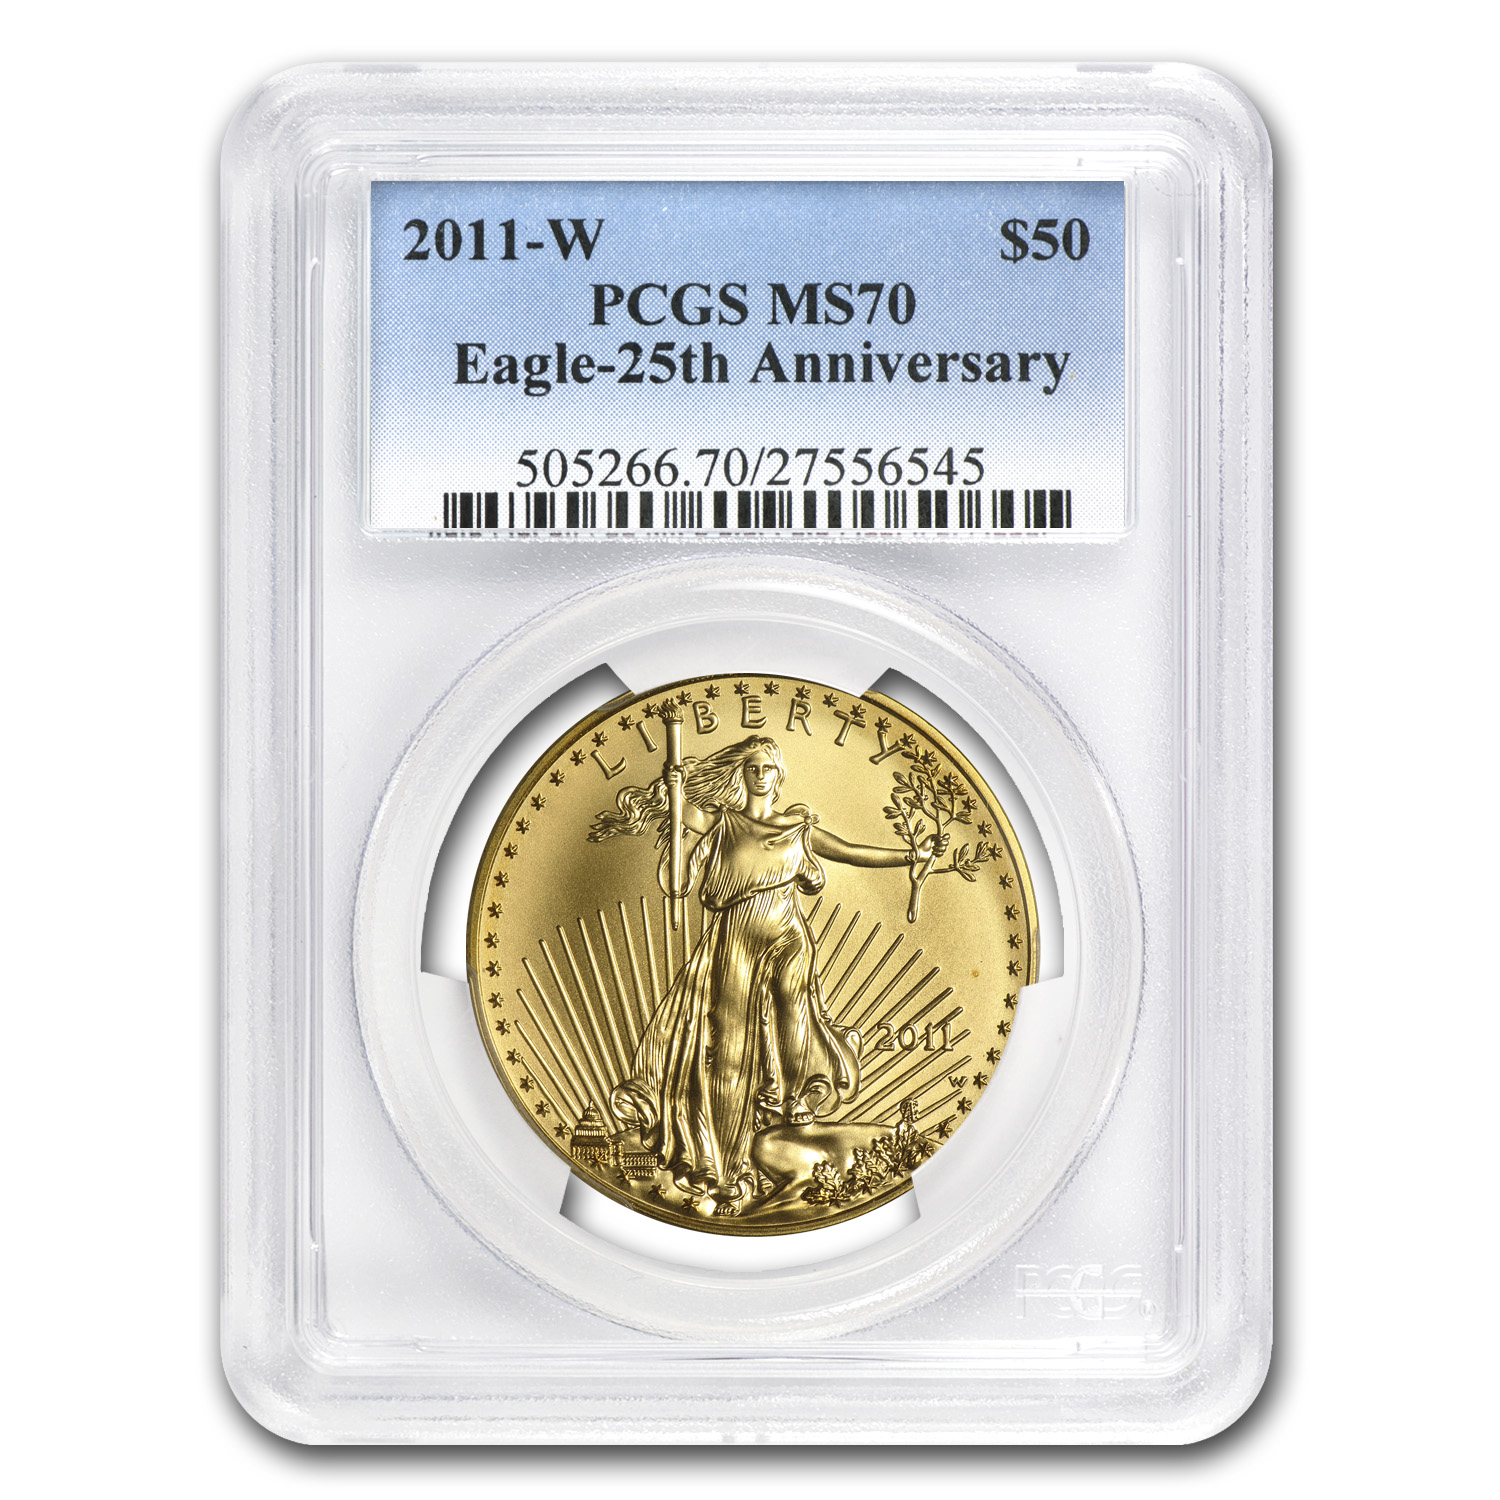 2011-W 1 oz Burnished Gold Eagle MS-70 PCGS